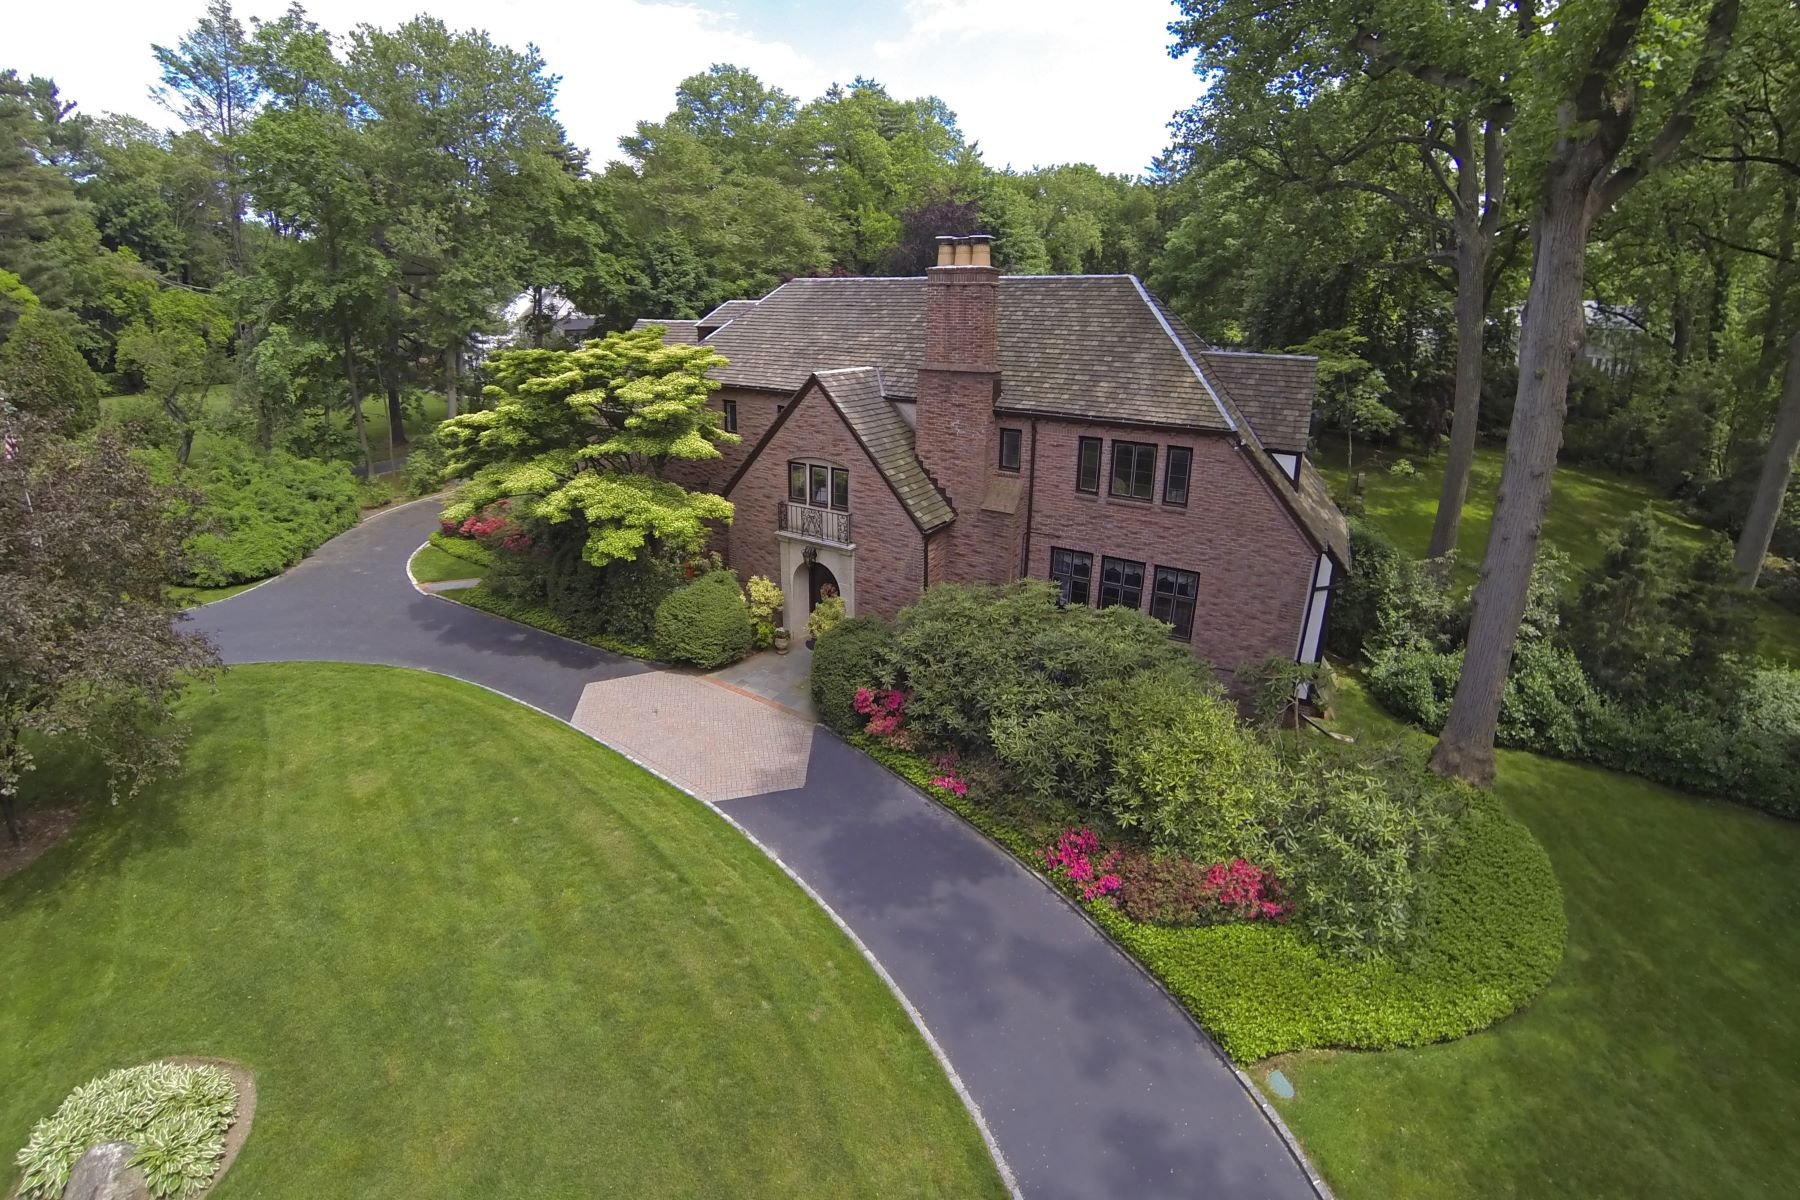 Single Family Home for Sale at 23 Bonnie Heights Rd , Manhasset, NY 11030 23 Bonnie Heights Rd Manhasset, New York 11030 United States